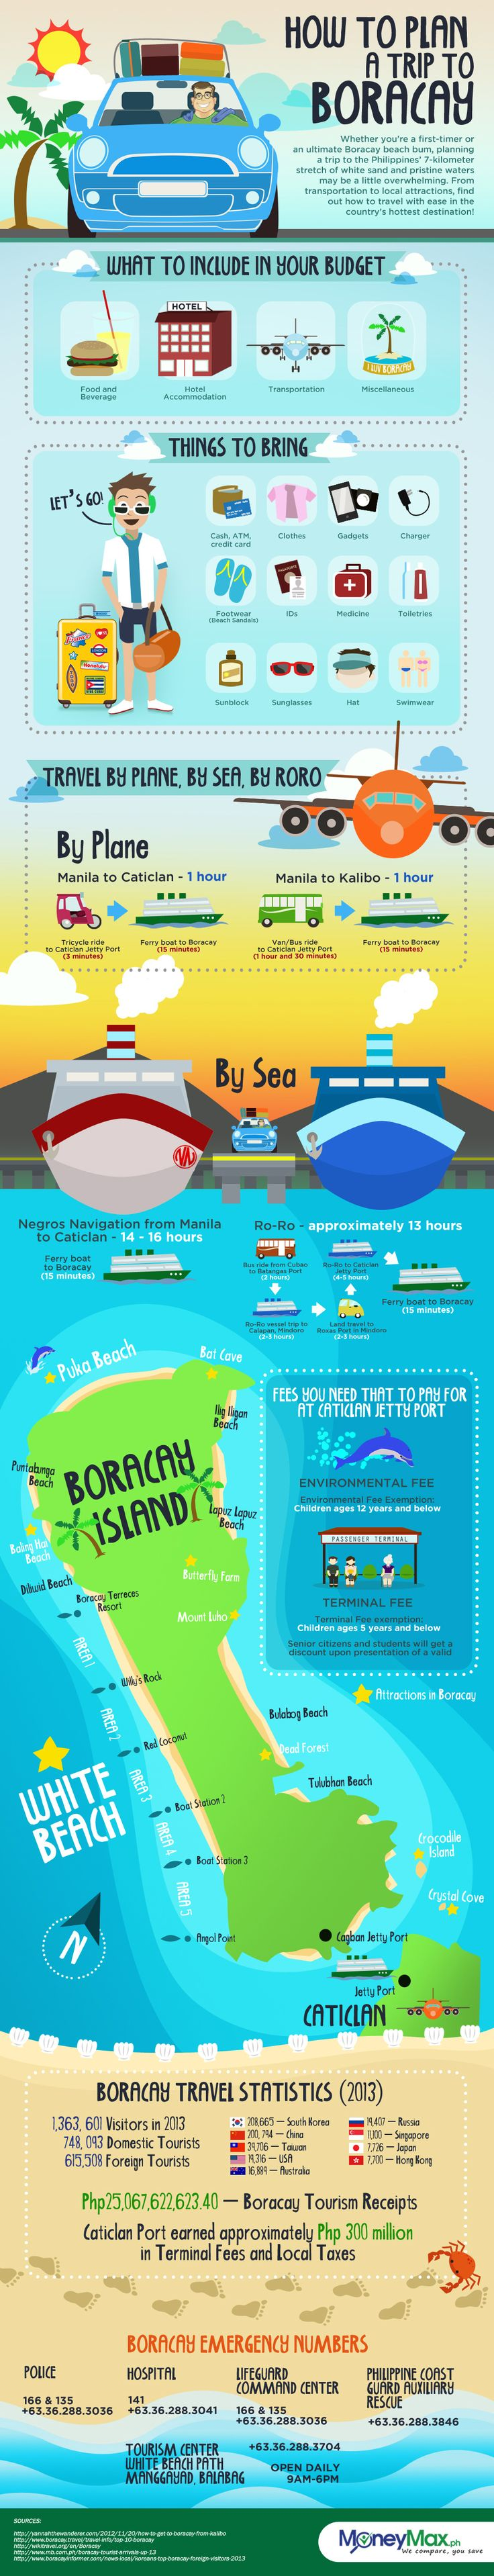 boracay island infographic, How to plan your trip to Boracay island.